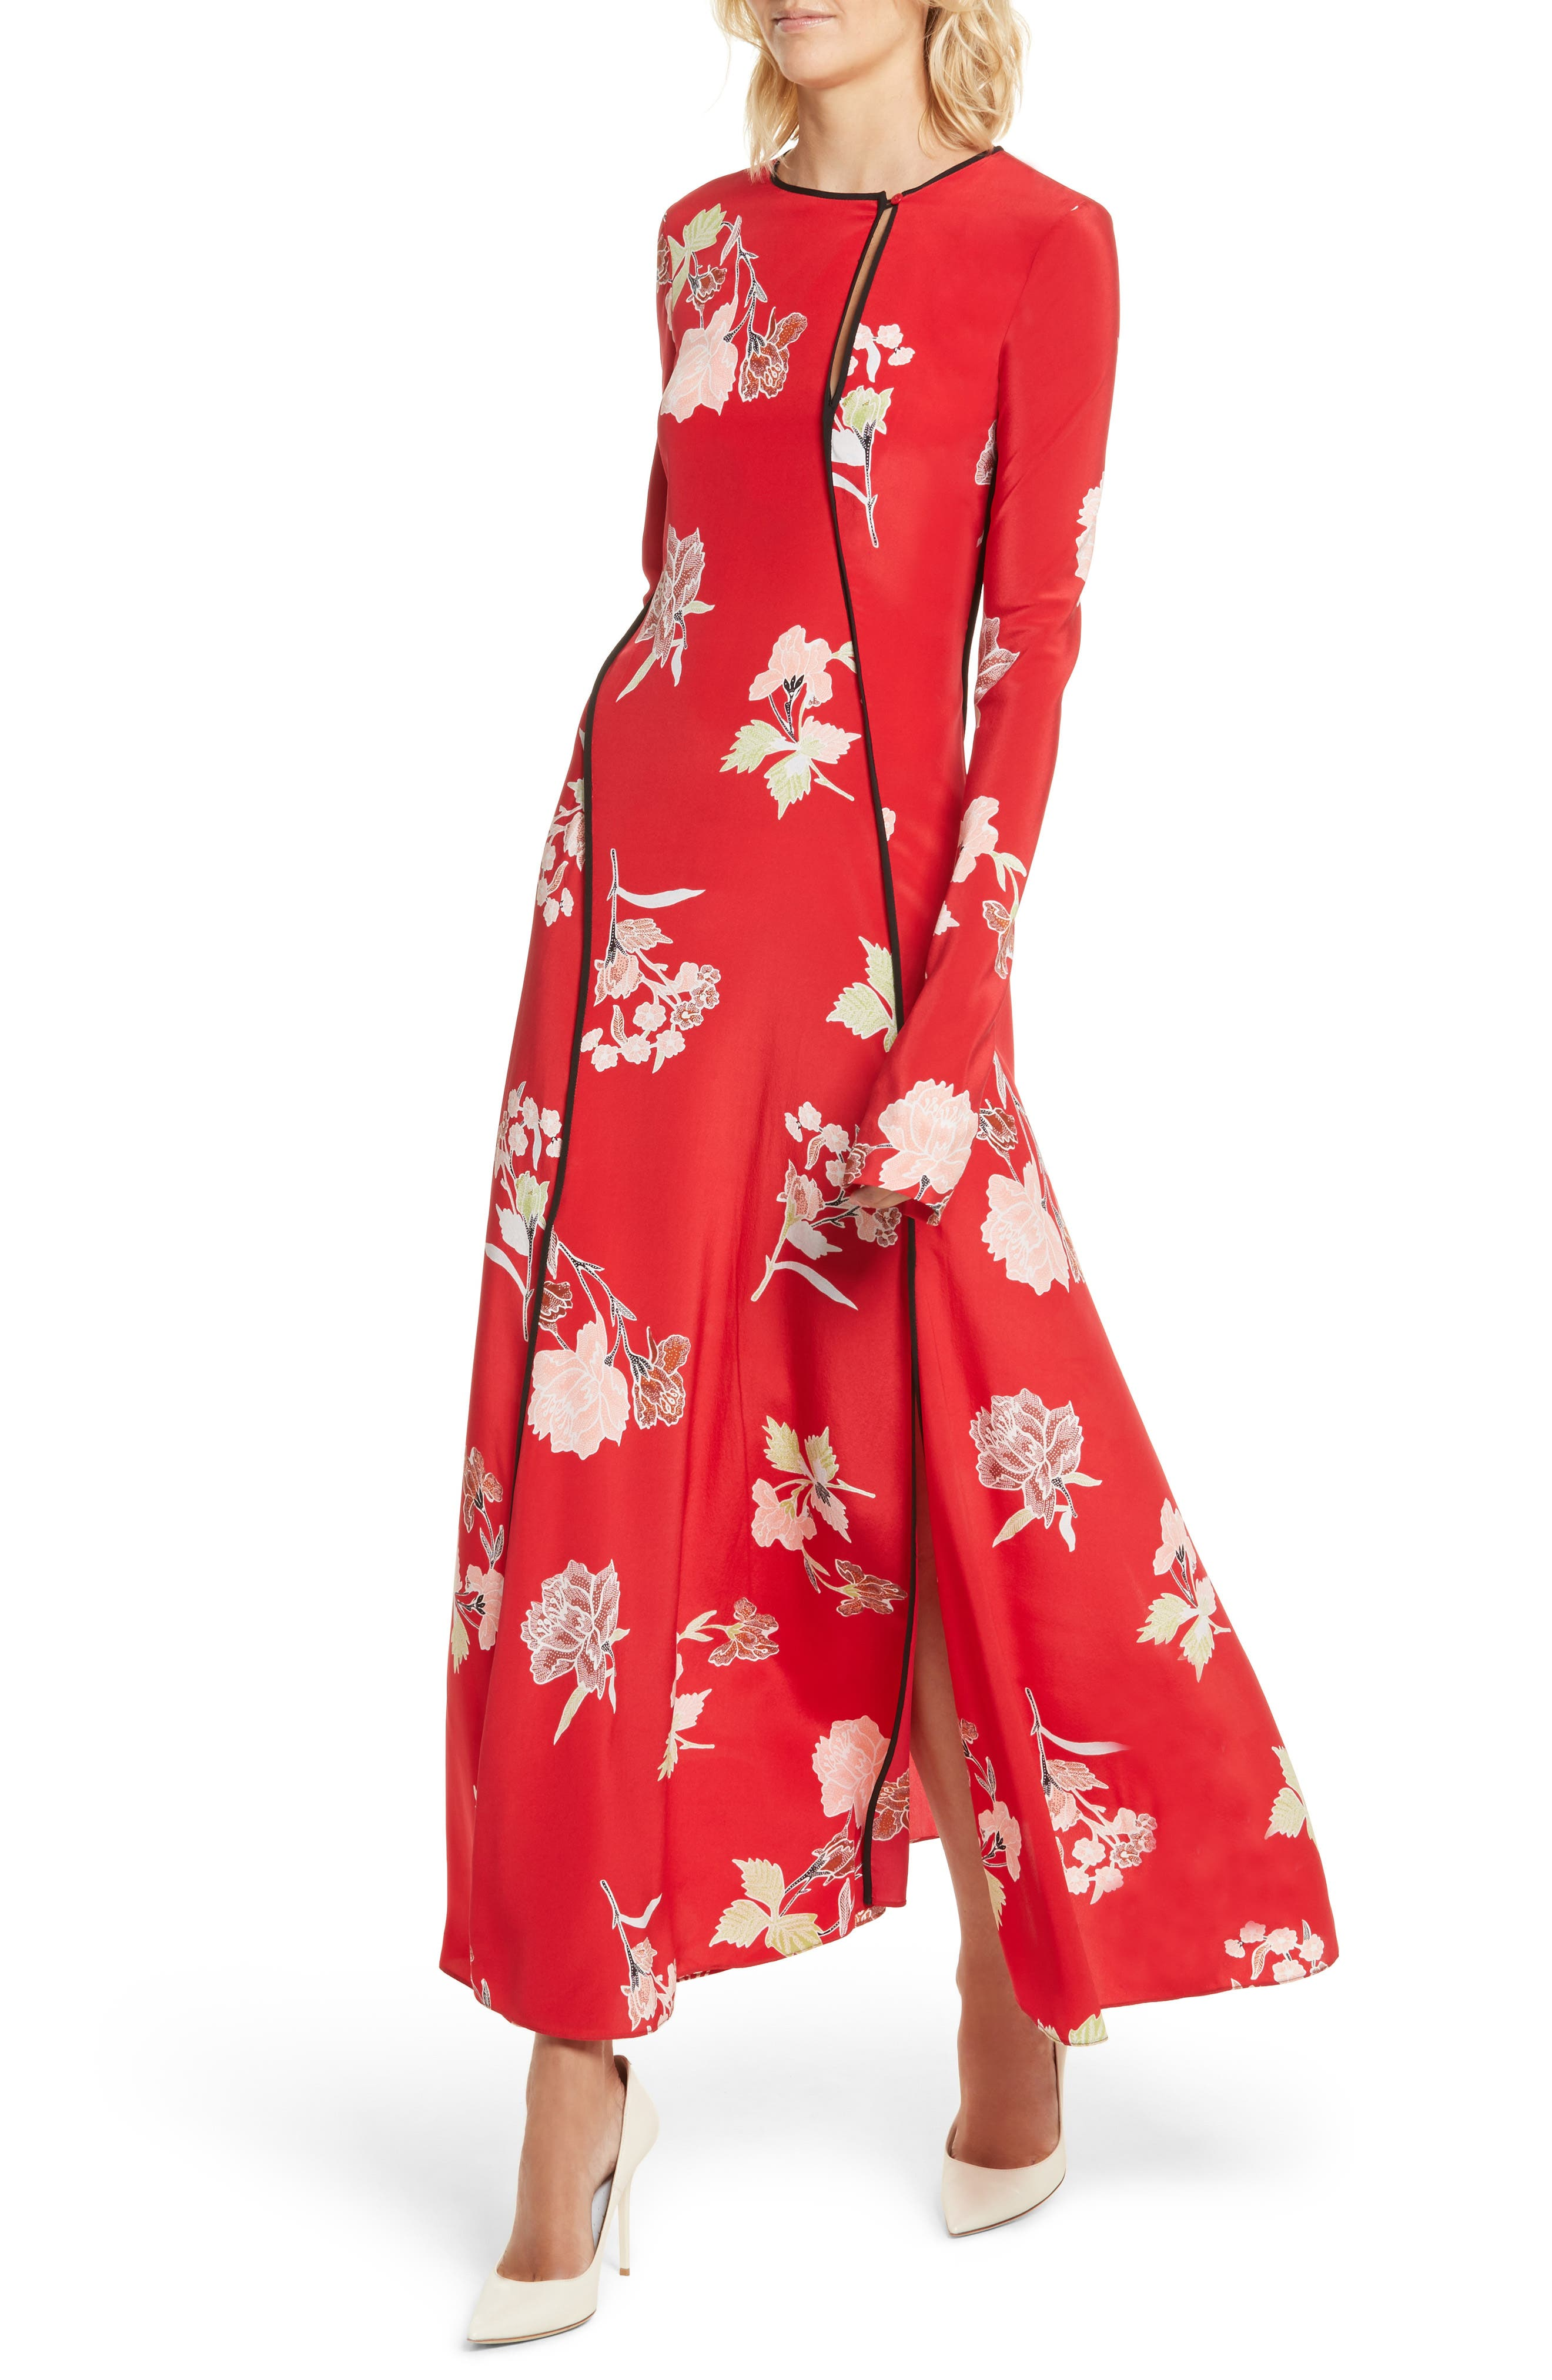 Bias Cut Floral Silk Maxi Dress,                             Alternate thumbnail 4, color,                             Everton Lipstick / Black